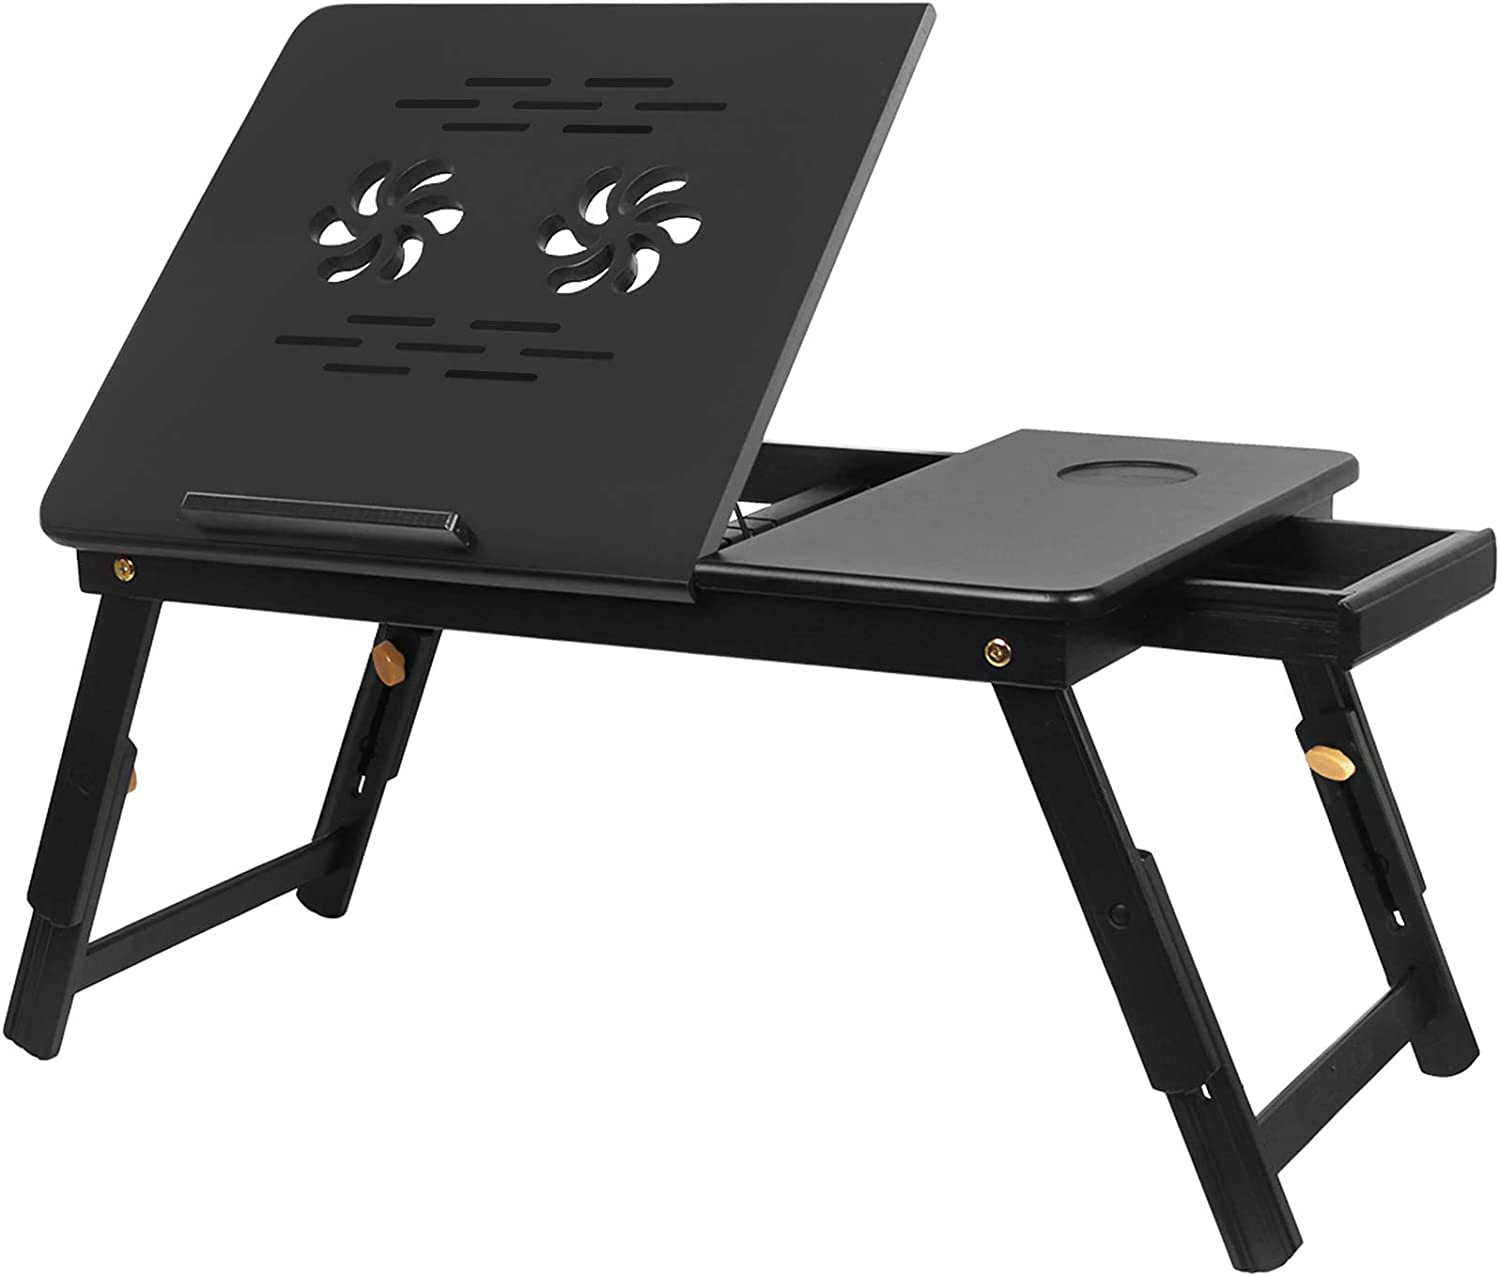 Bamboo Laptop Desk,Adjustable Portable Breakfast Serving Bed Tray Tilting Top with Storage Drawer for Couch,Multifunctional Table Floor Desk Notebook Stand with Folding Legs (Black)